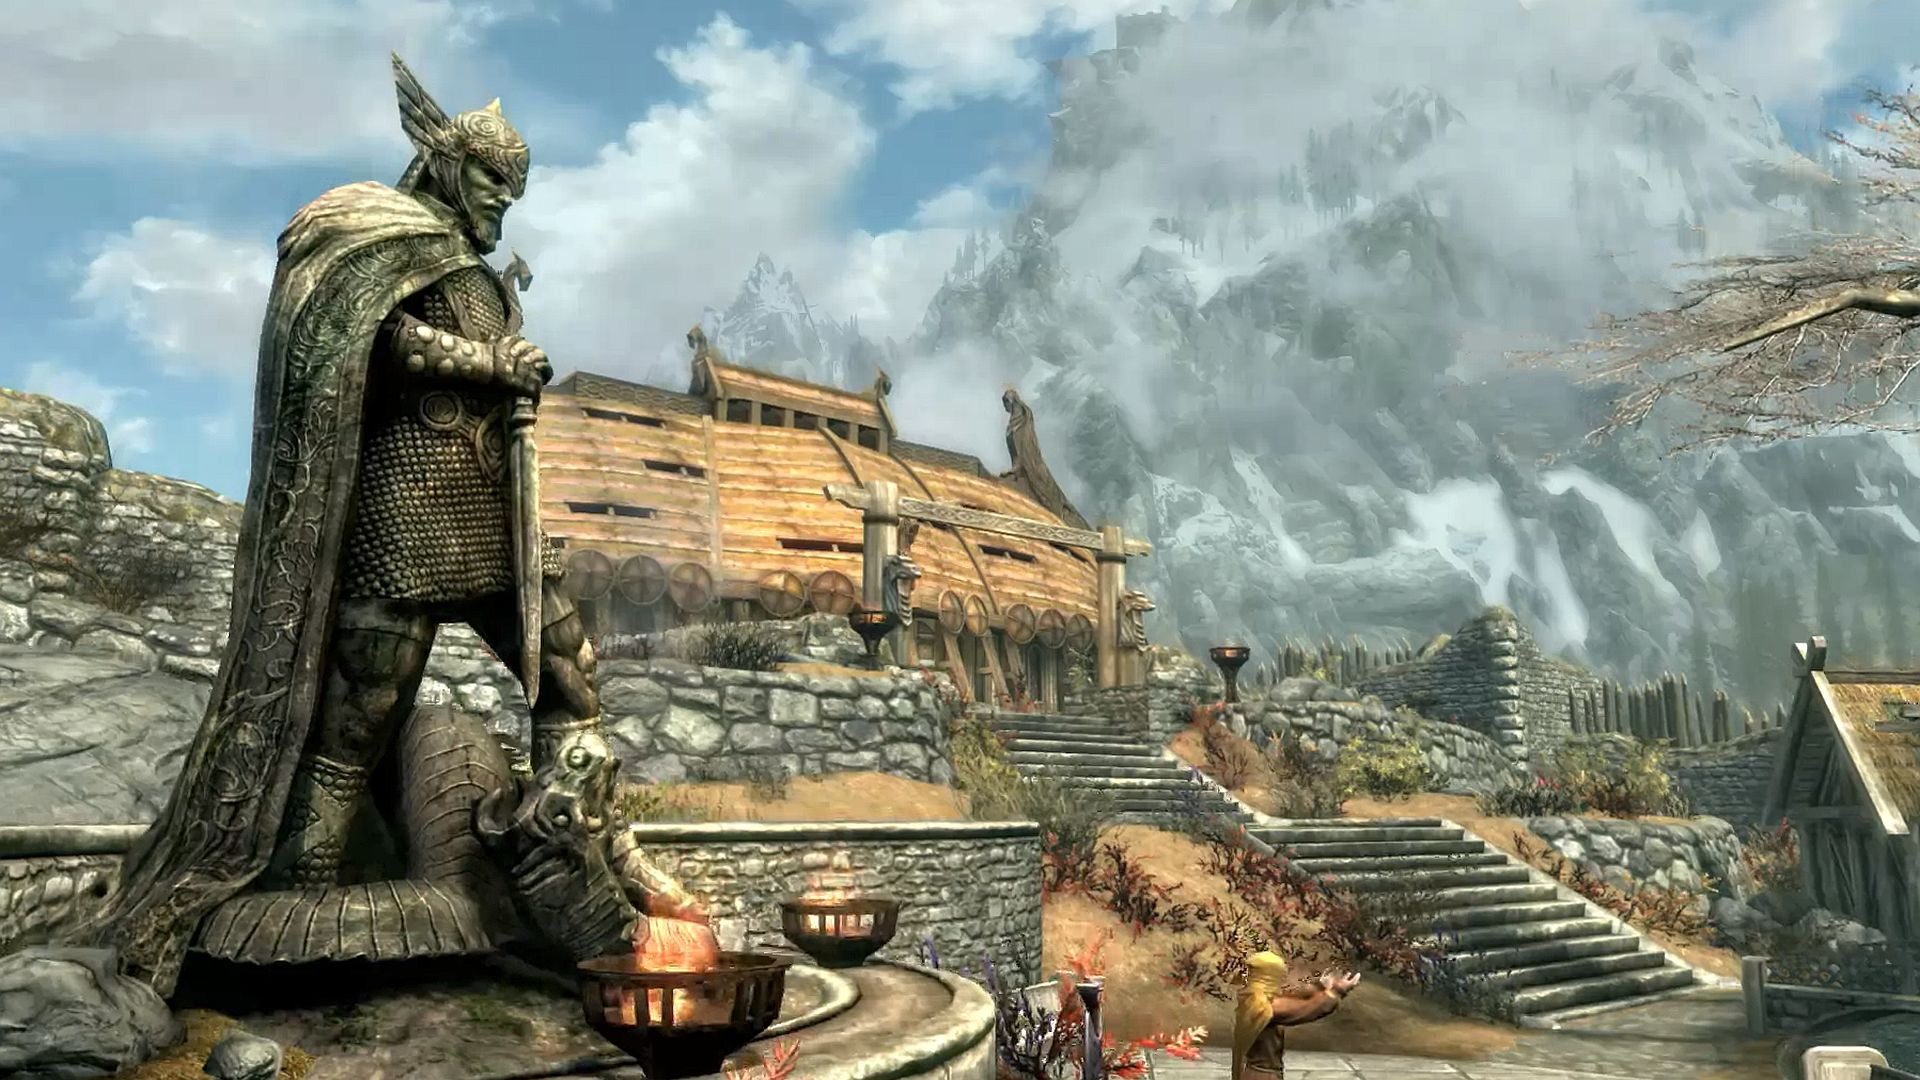 A Skyrim fan has recreated Whiterun in Minecraft and it's spot on